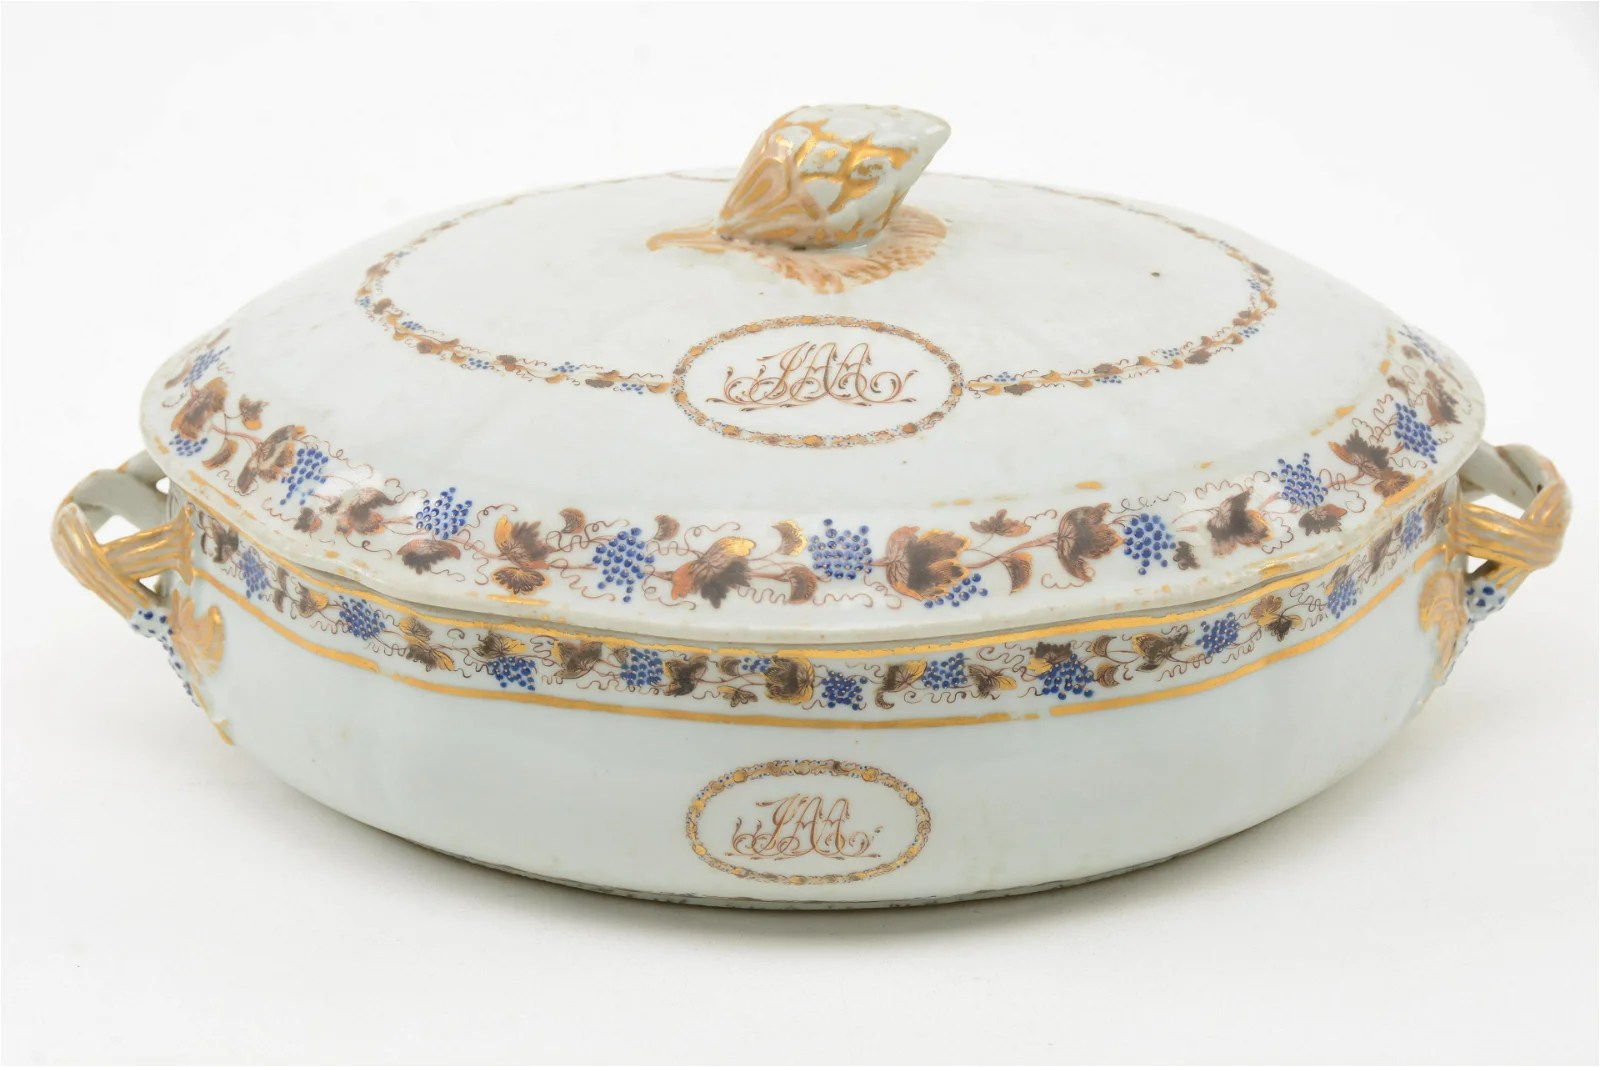 Chinese Export Porcelain Covered Vegetable Dish